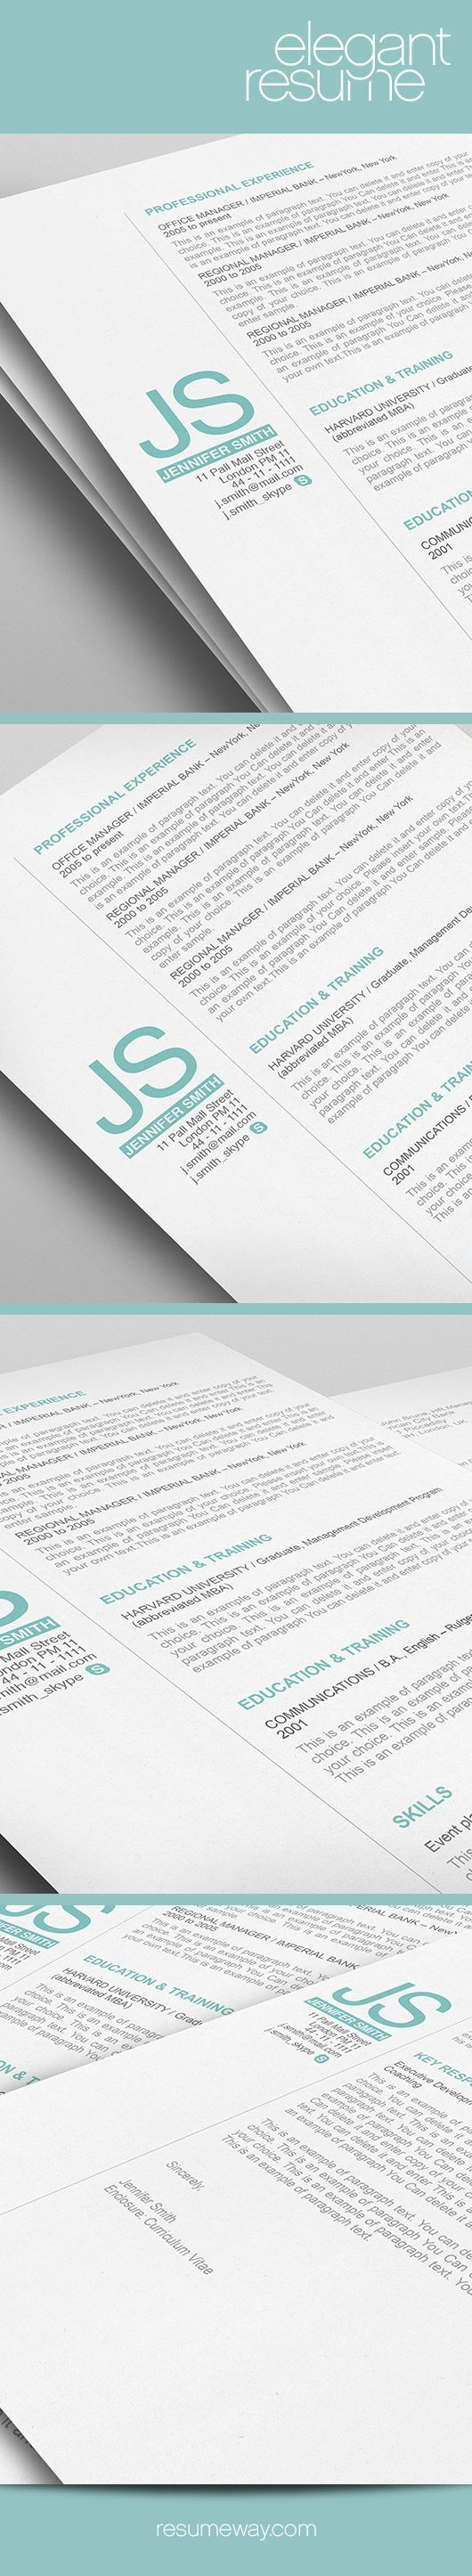 how to make cover letter of resume%0A Elegant Resume Template          Premium line of Resume  u     Cover Letter  Templates  Easy edit with MS Word  Apple Pages  Resume  Resumes   ResumeWay